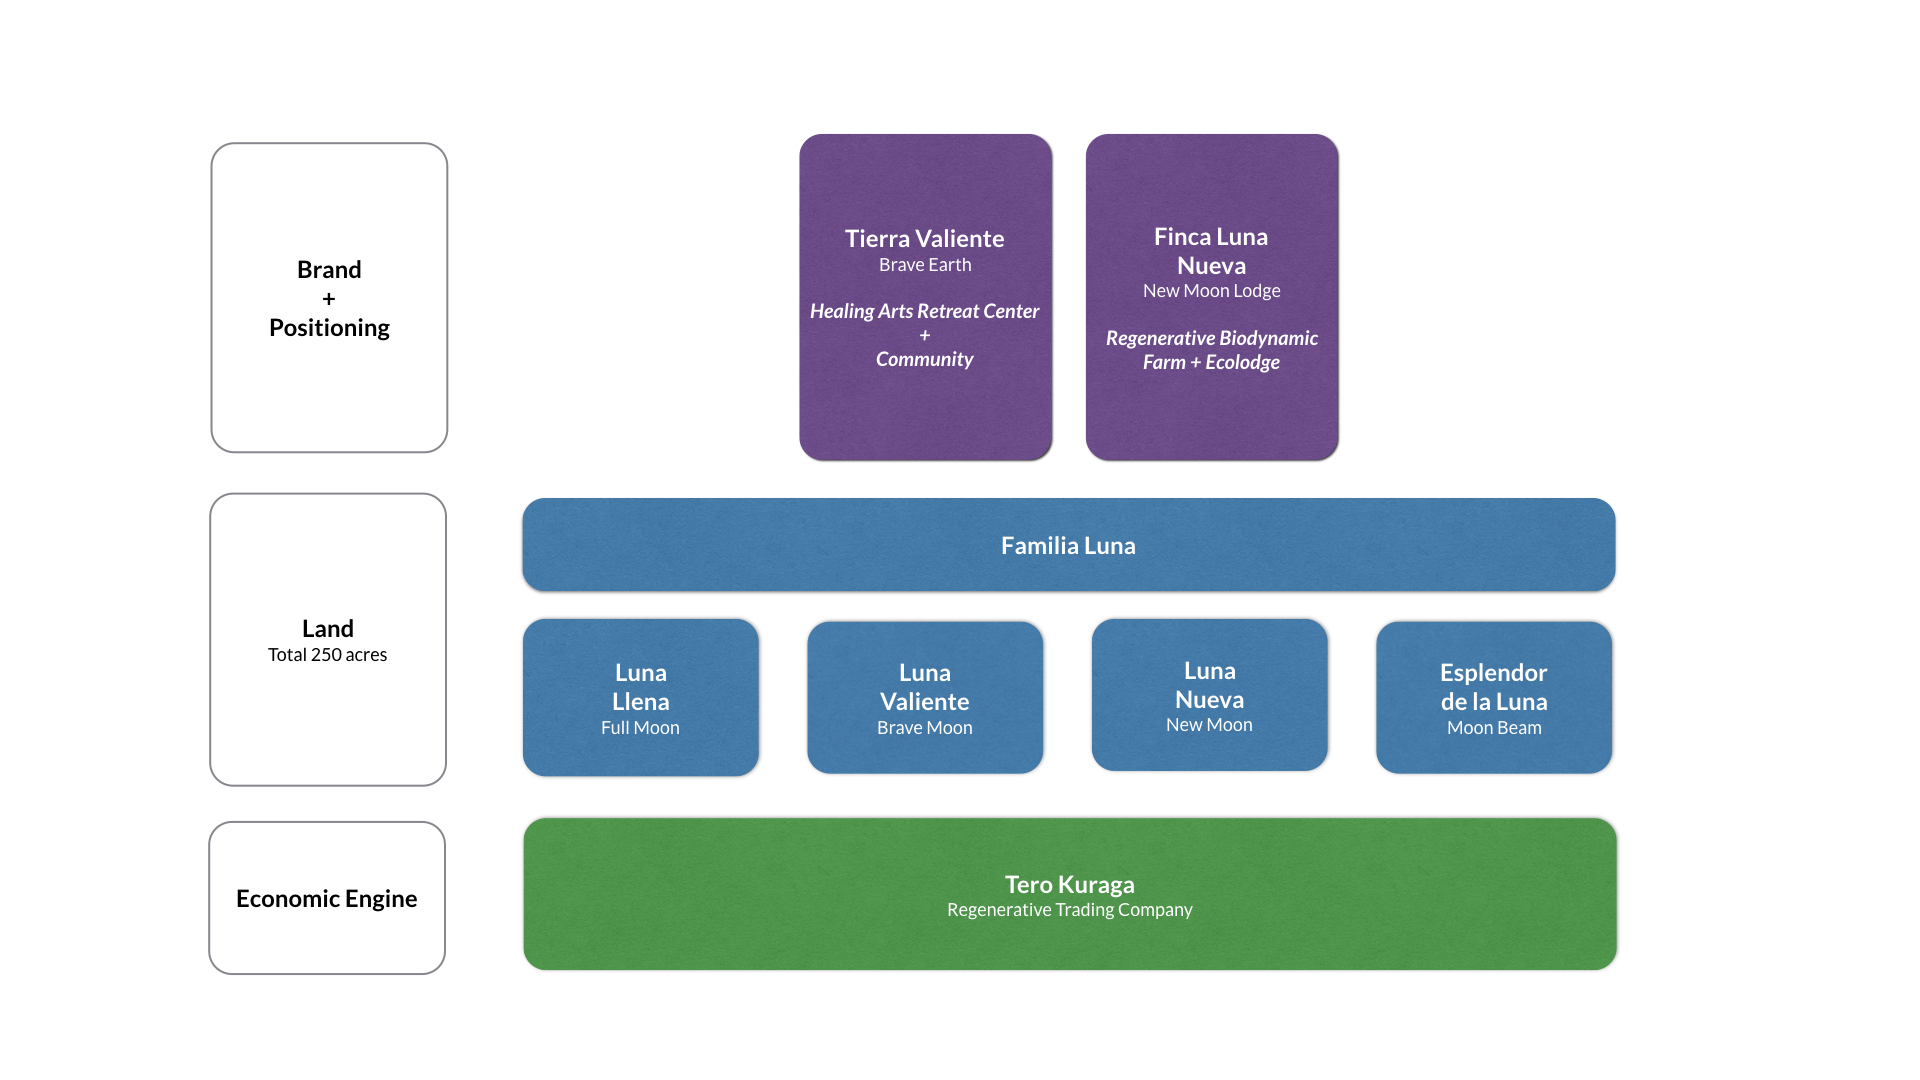 A schematic of the various entities involved with the Brave Earth Retreat Center